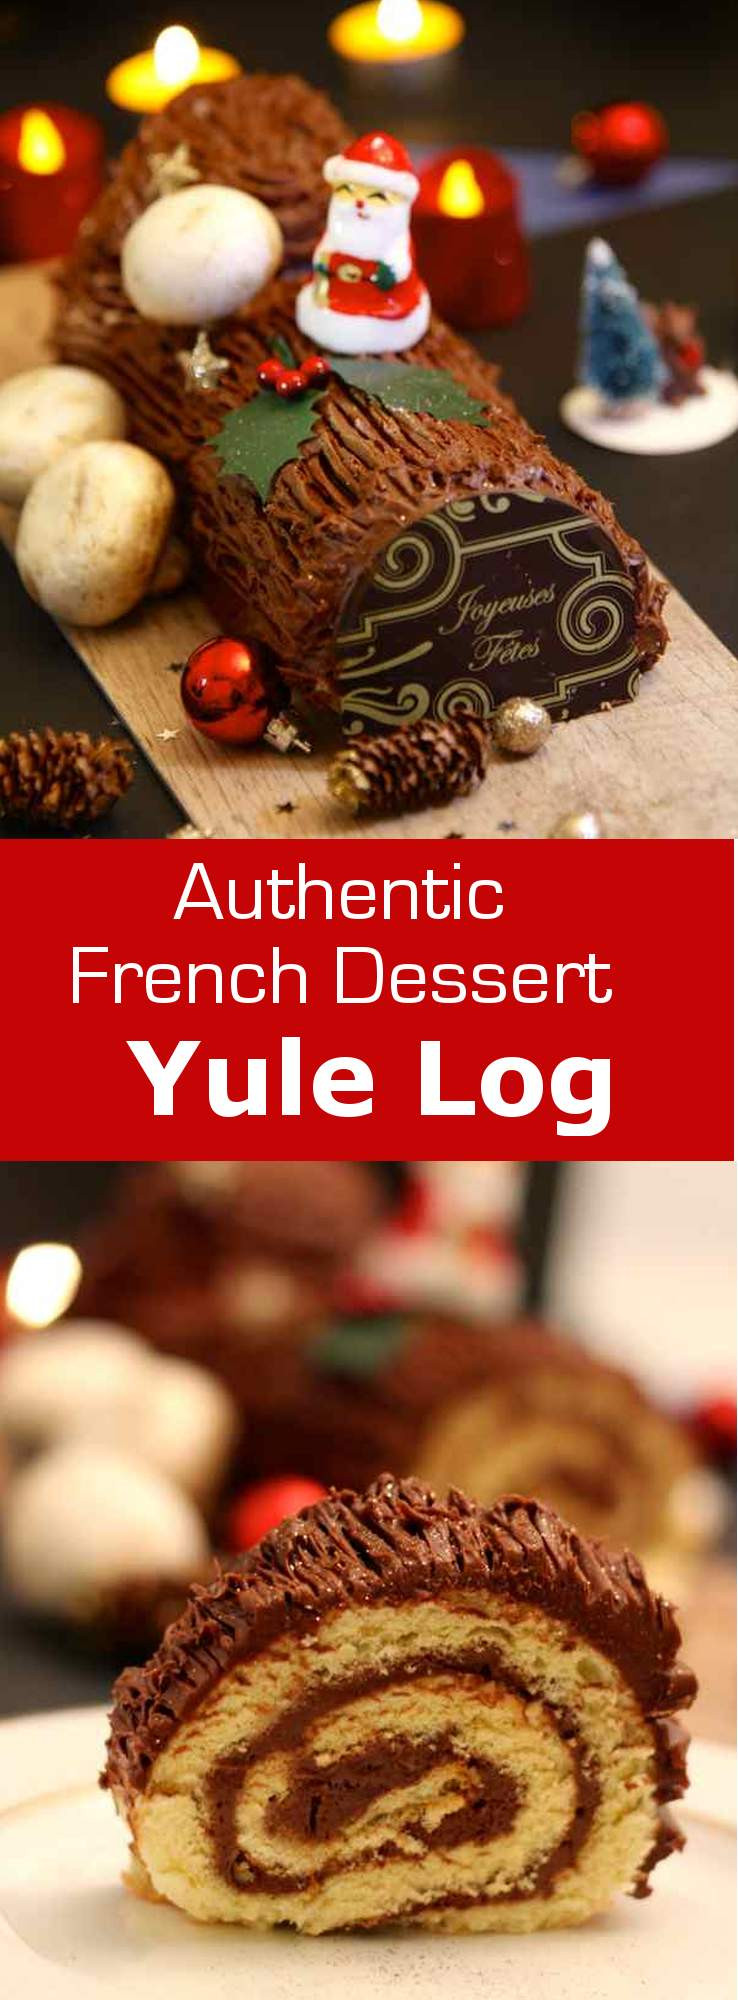 Traditional French Christmas Desserts  Chocolate Yule Log Authentic French Recipe